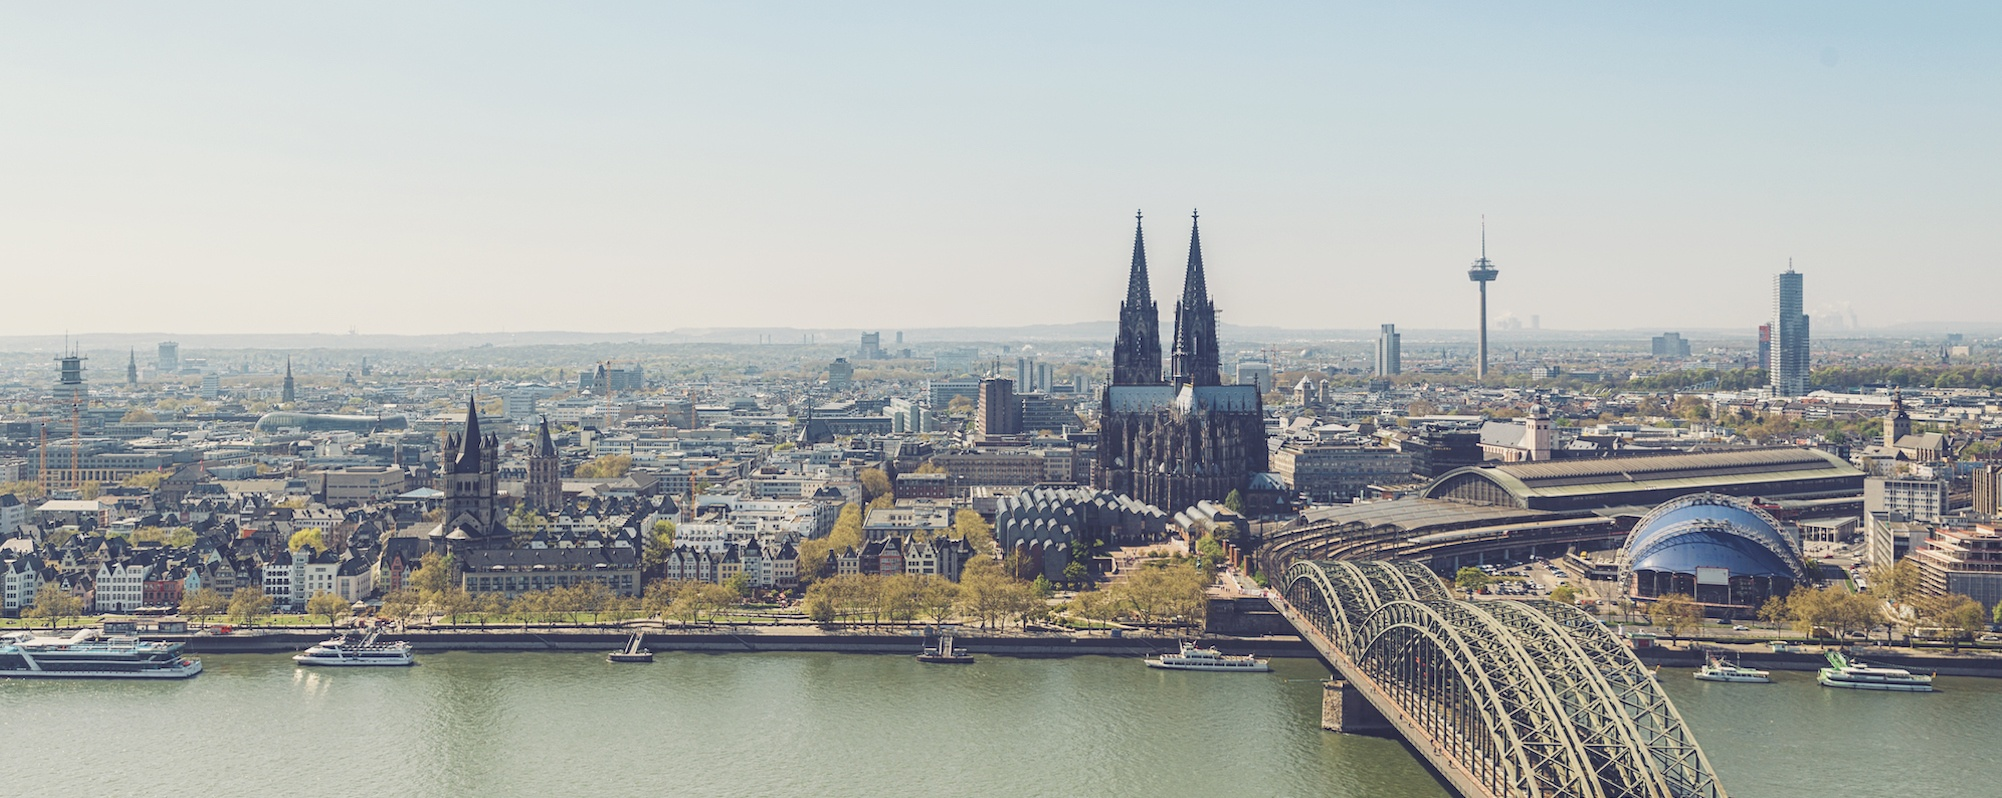 cologne germany SI Partners M&A DMEXCO 2018.jpg